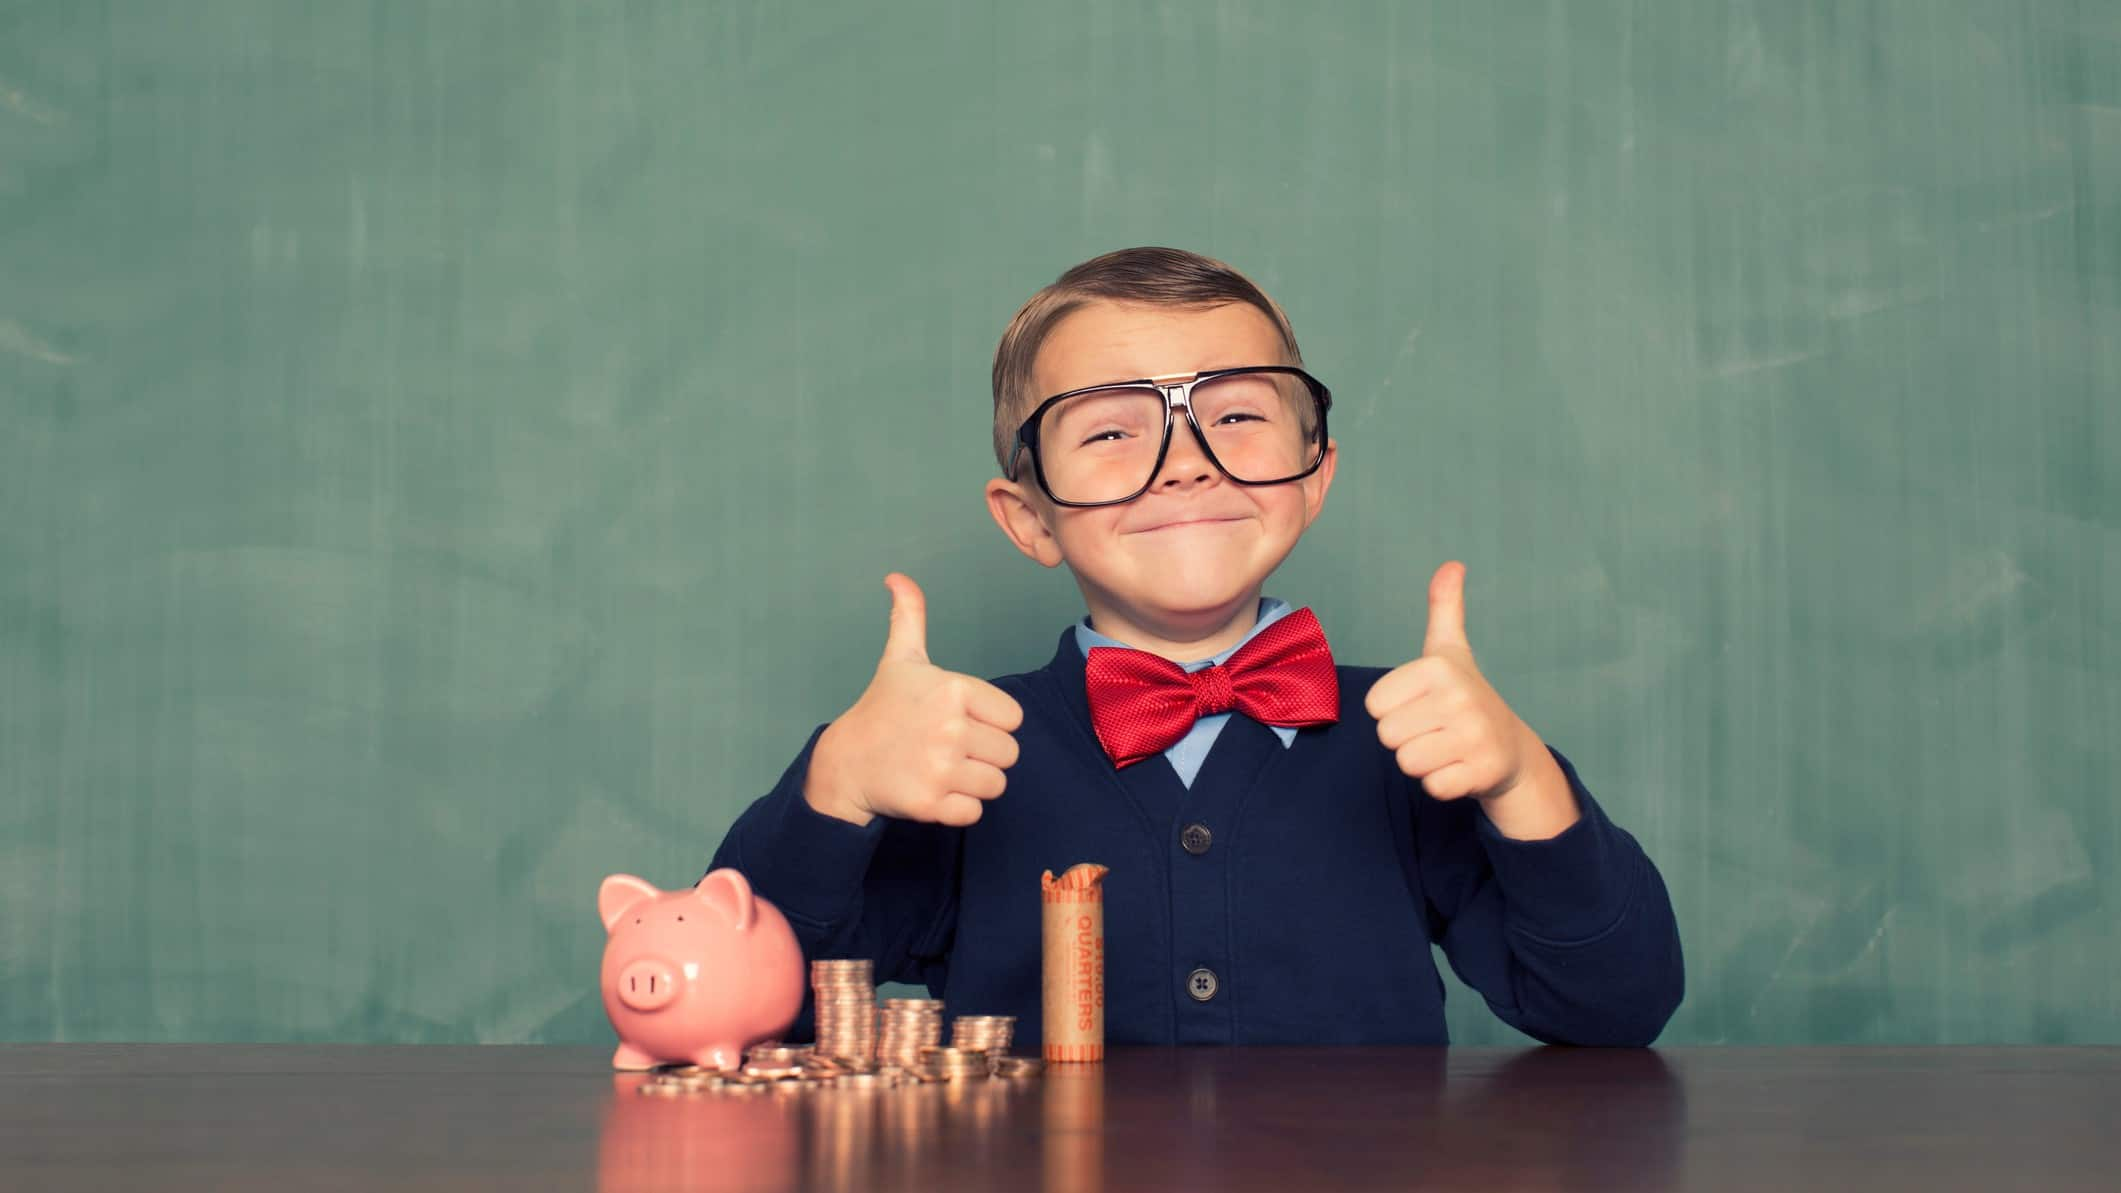 cheap shares represented by boy in business suit giving thumbs up with piggy banks and coin piles